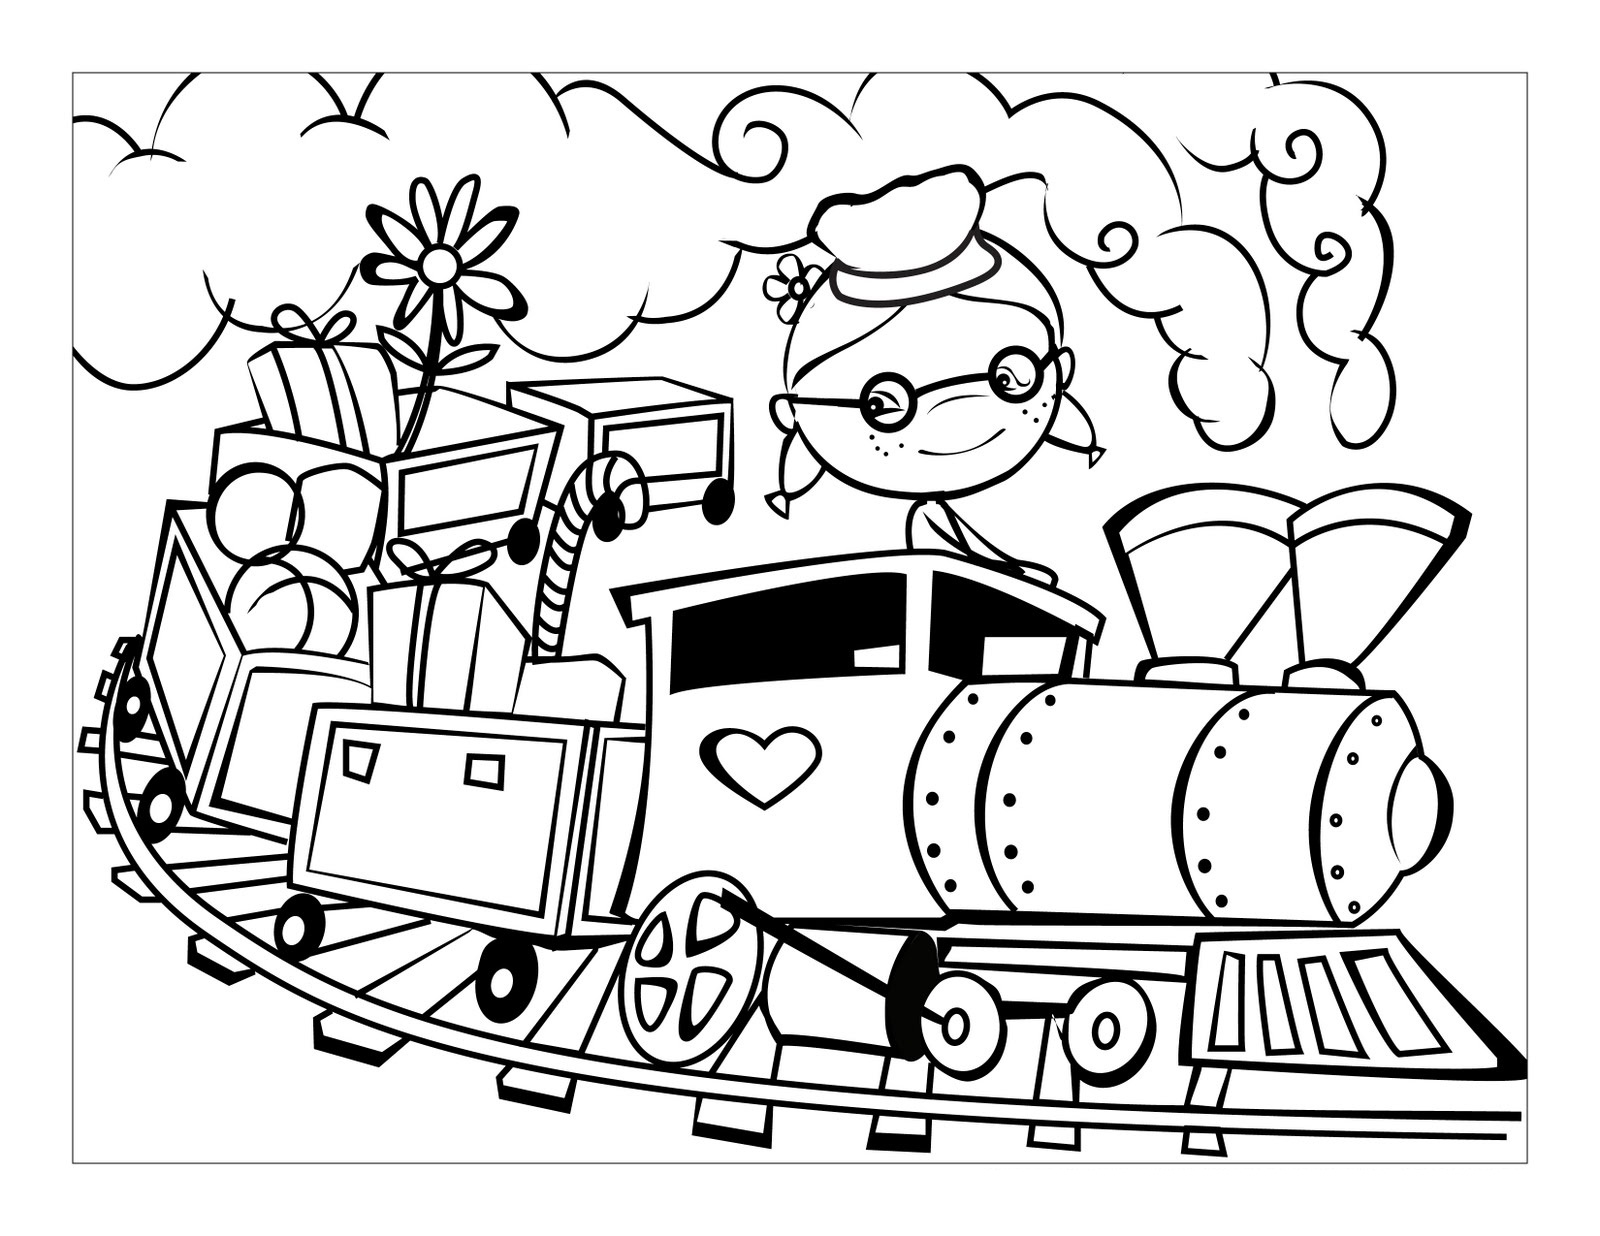 Free printable coloring pages vehicles - Train Cars Coloring Pages